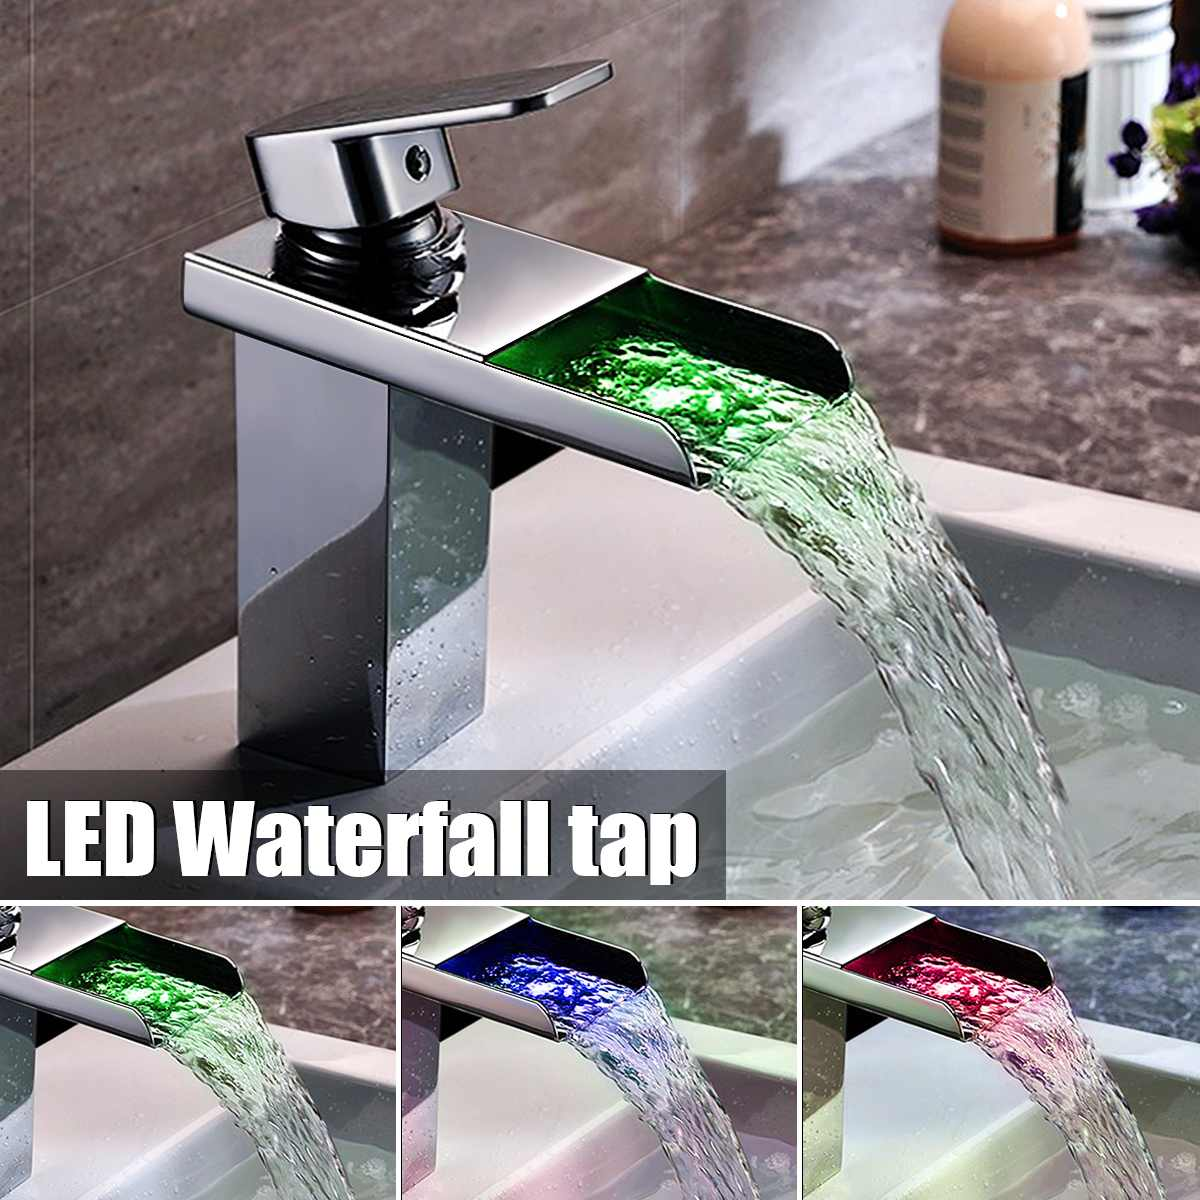 LED Color Change Waterfall Basin Faucet Chrome Polished Single Handle Faucet Bathroom Sink Cold And Hot Mixer TapLED Color Change Waterfall Basin Faucet Chrome Polished Single Handle Faucet Bathroom Sink Cold And Hot Mixer Tap